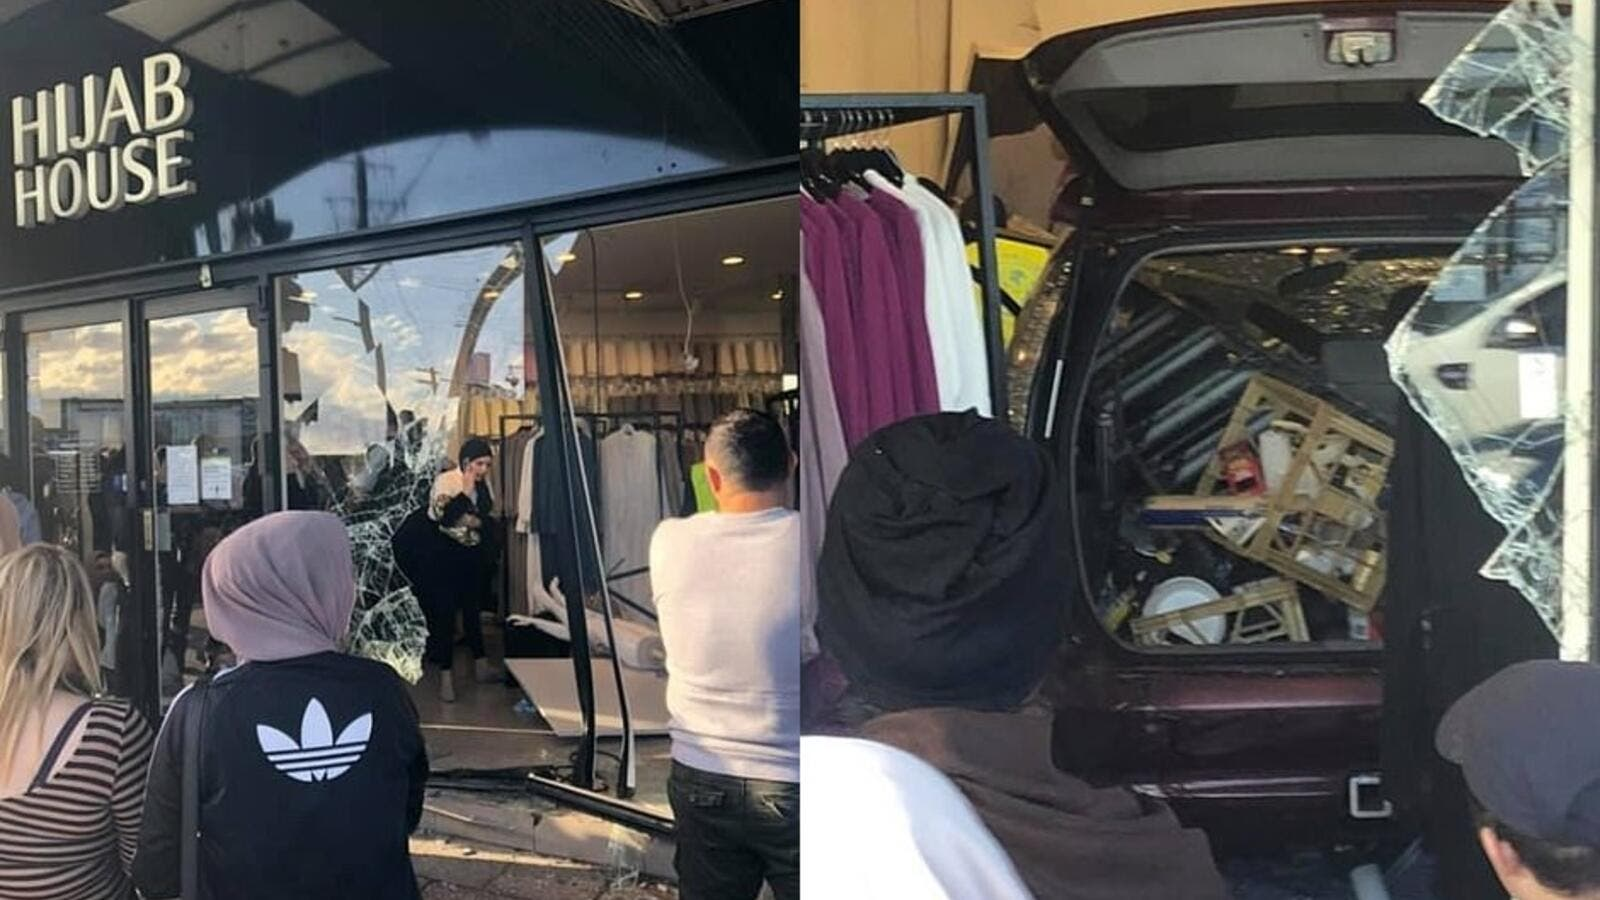 Car Smashes Into Hijab Store in Australia, Injuring 12 People